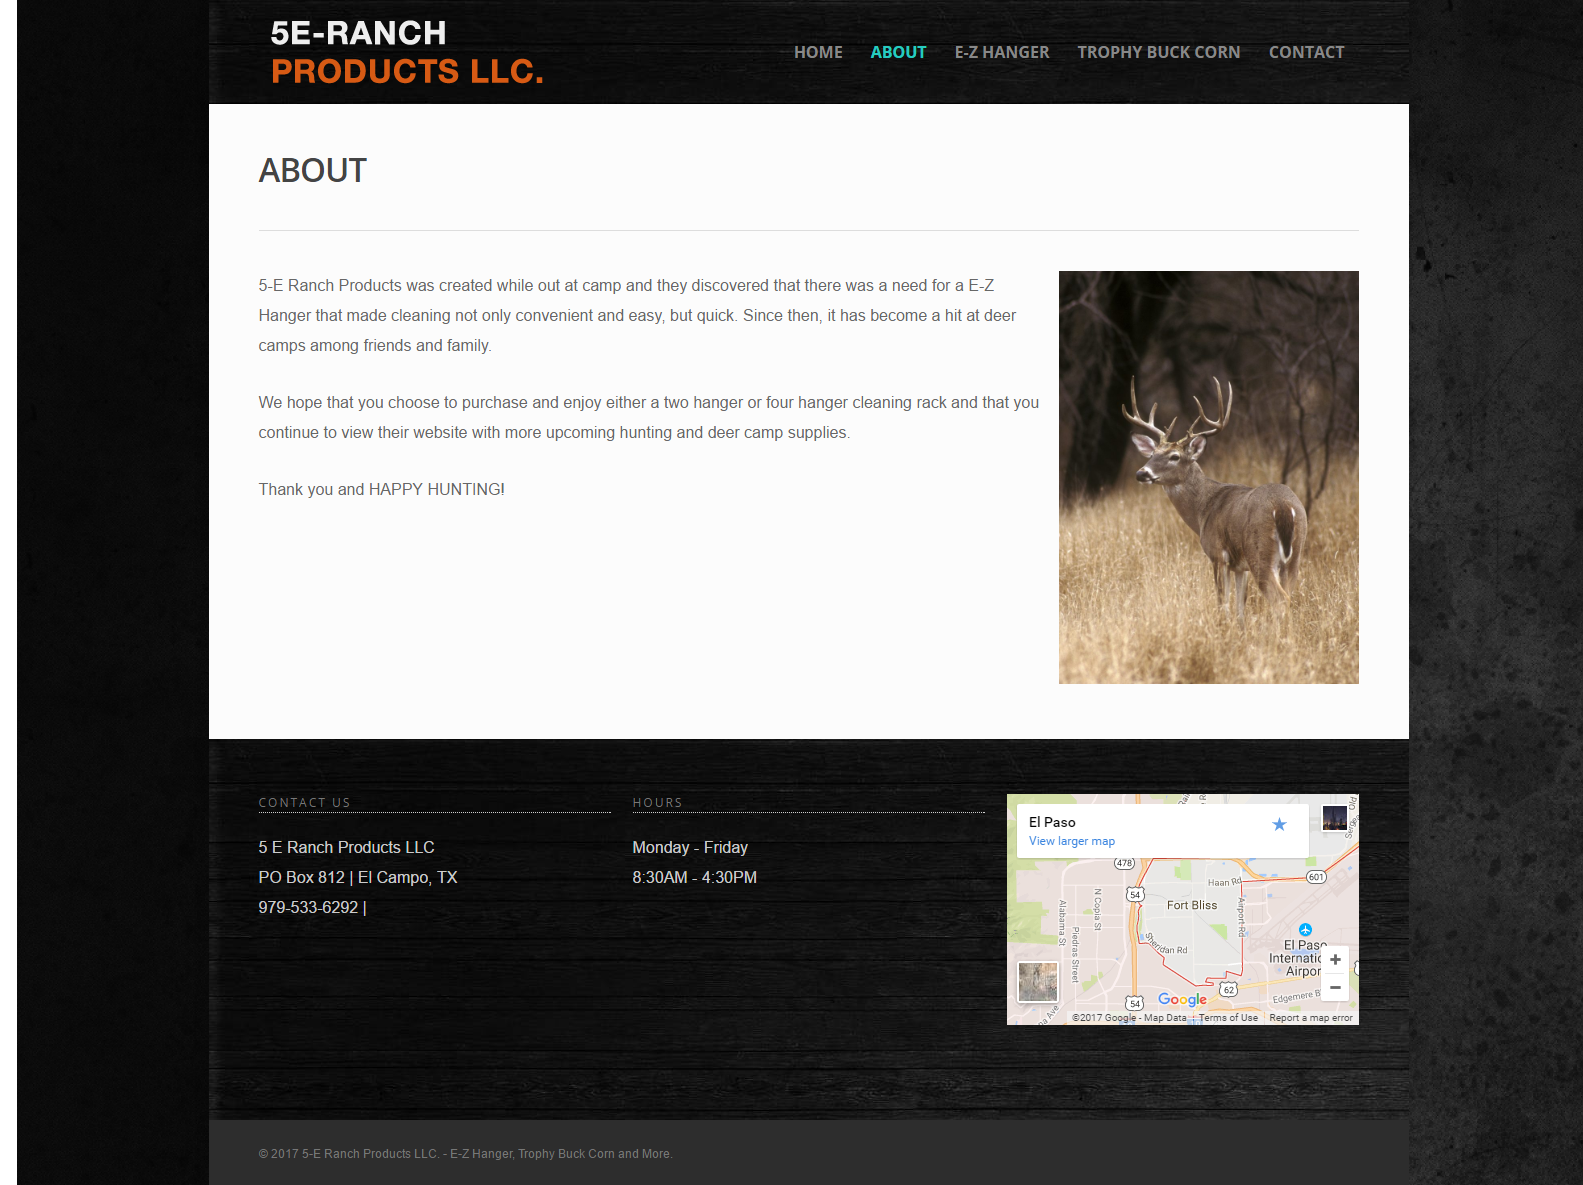 5e-Ranch Products